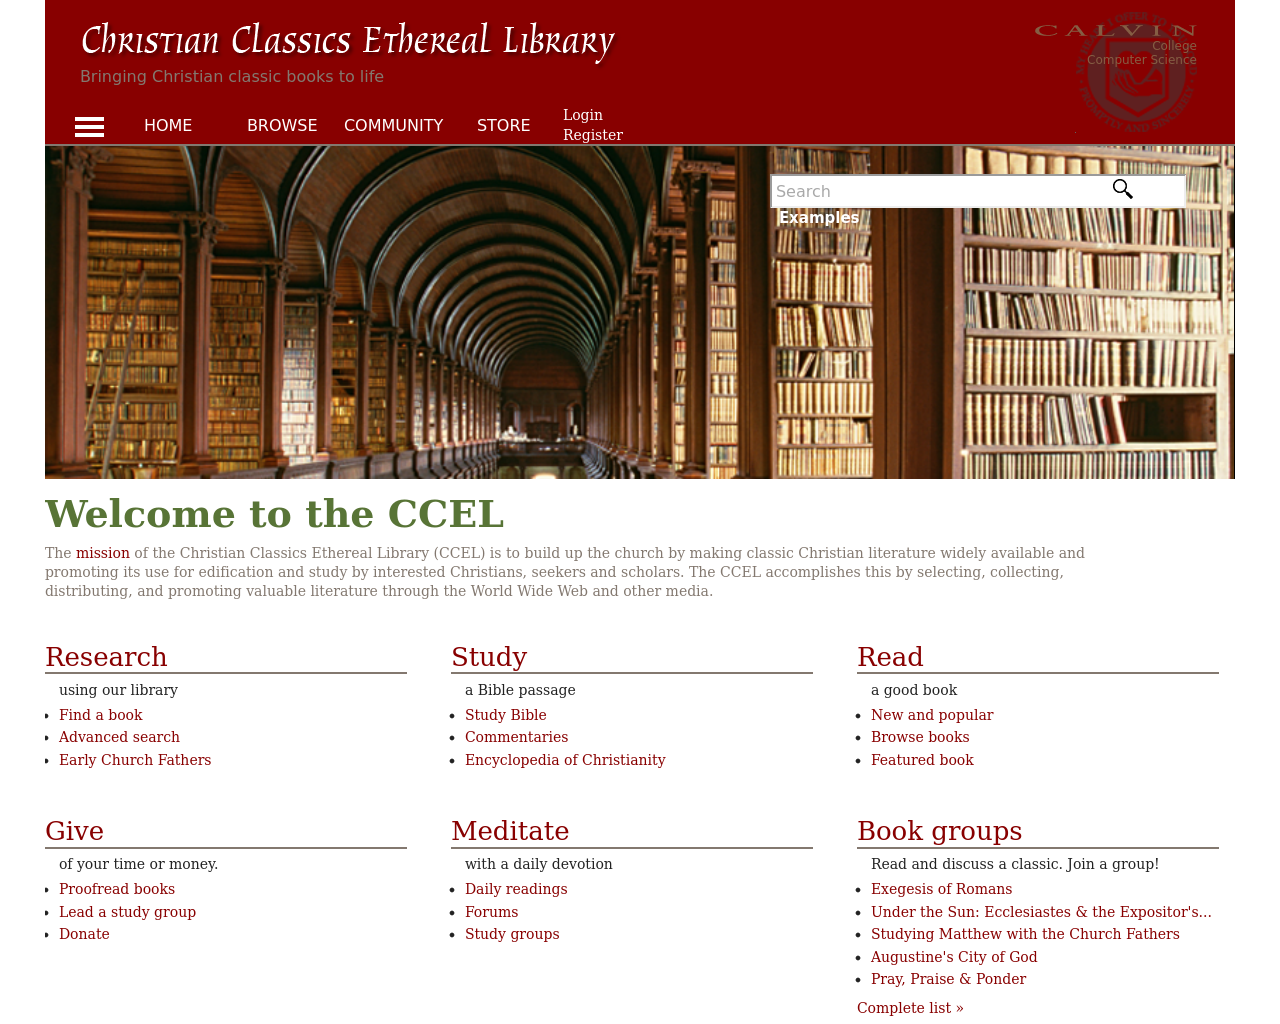 Christian-Classics-Ethereal-Library-Advertising-Reviews-Pricing